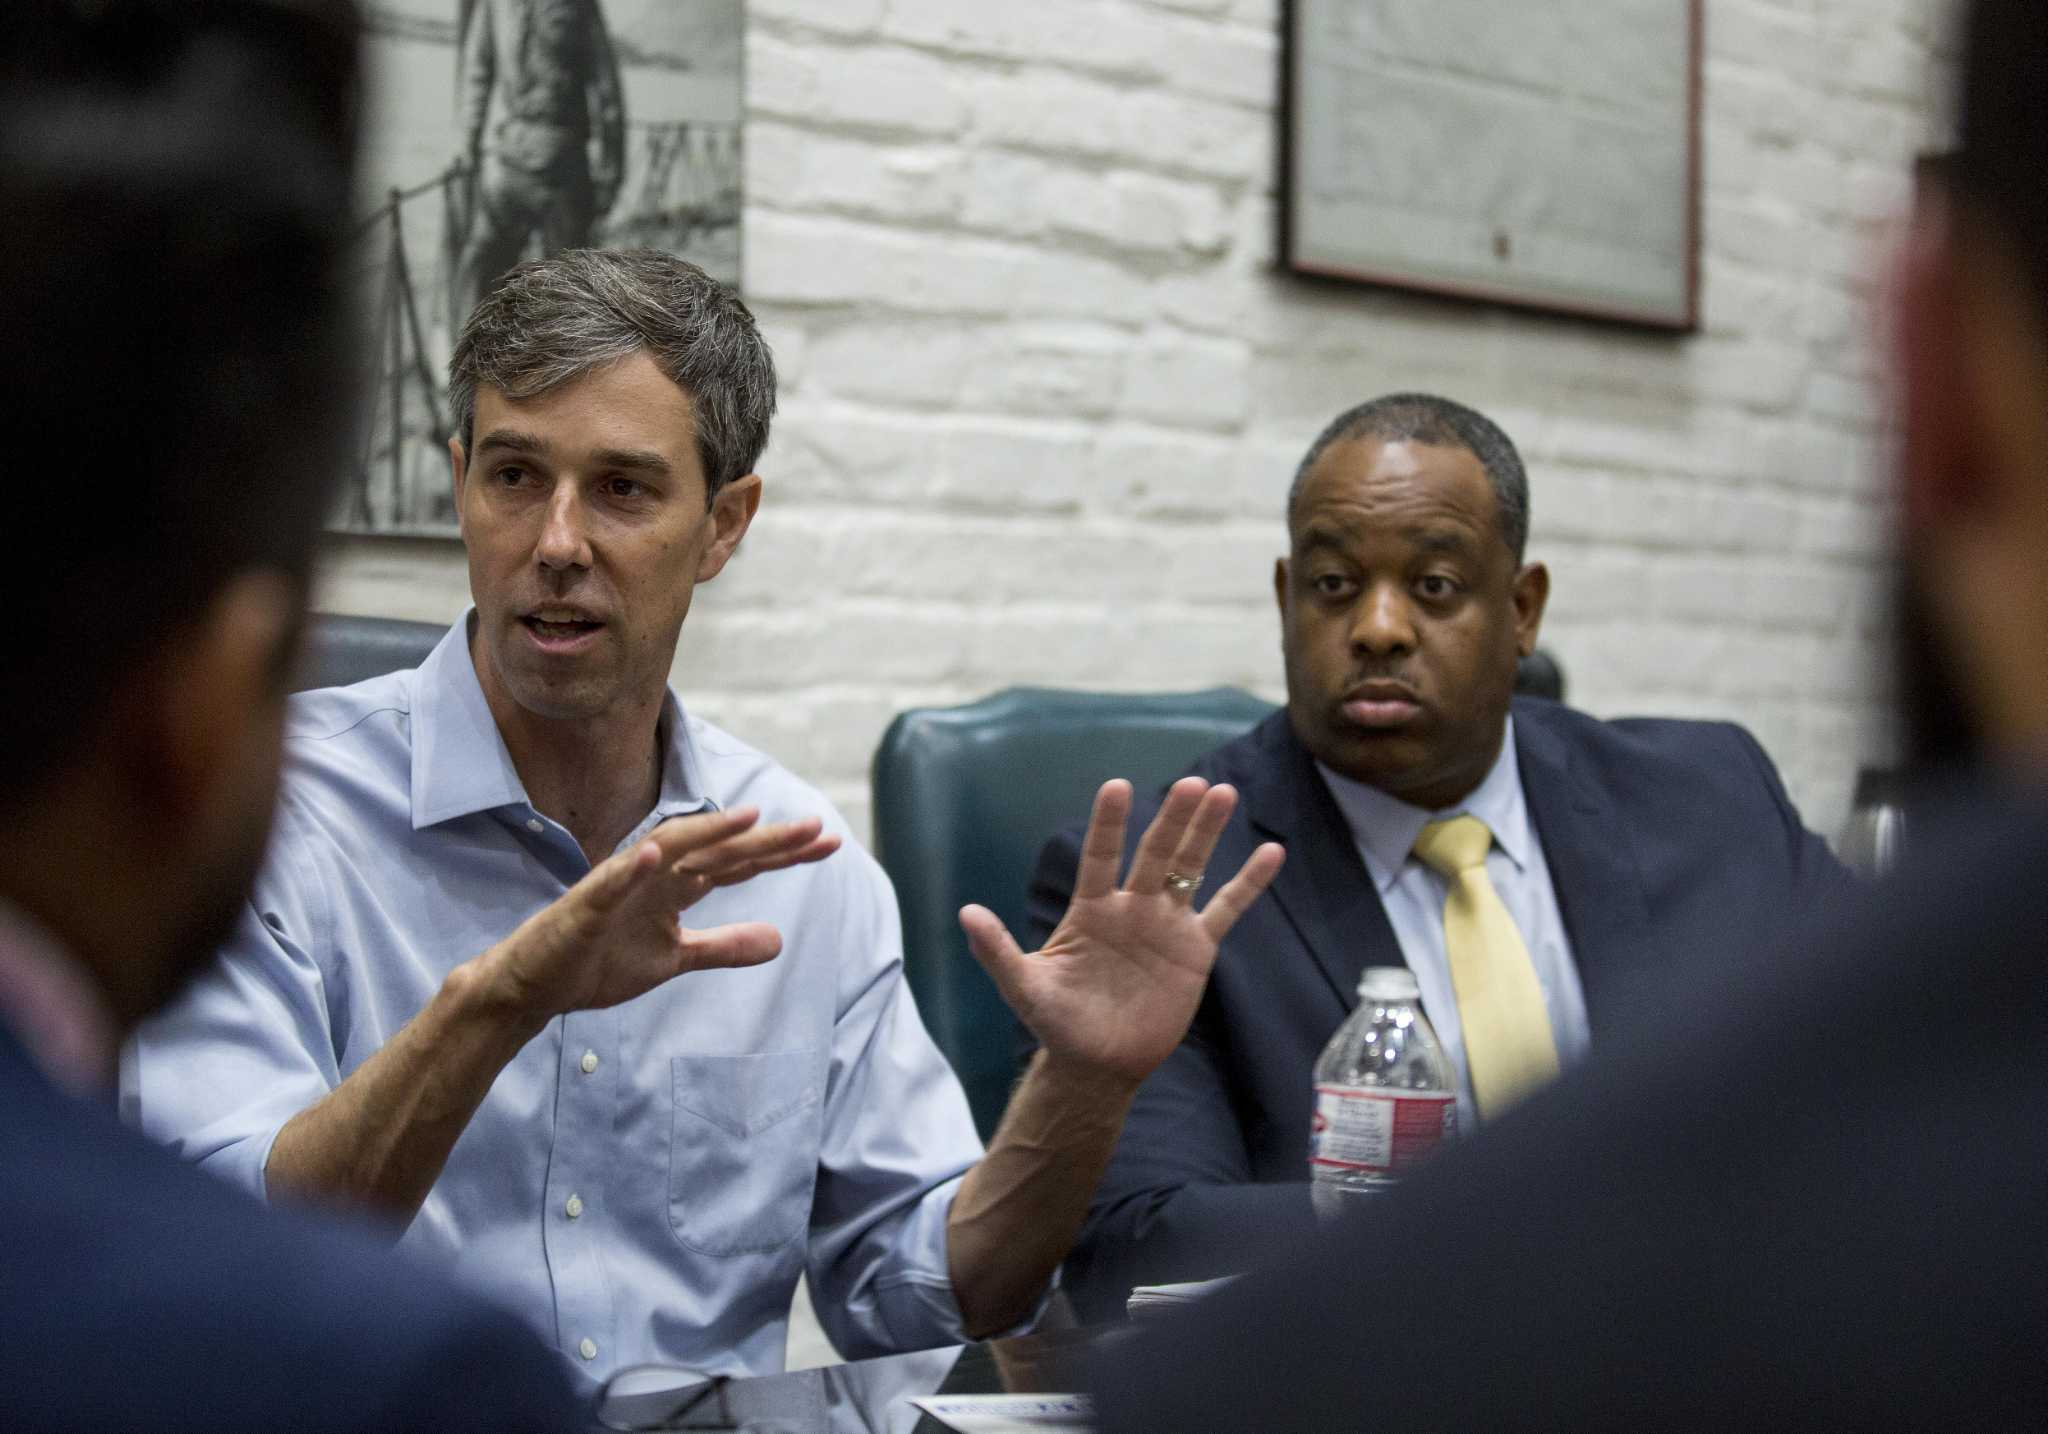 O'Rourke: Texas should lead the way on true criminal justice reform [Opinion]